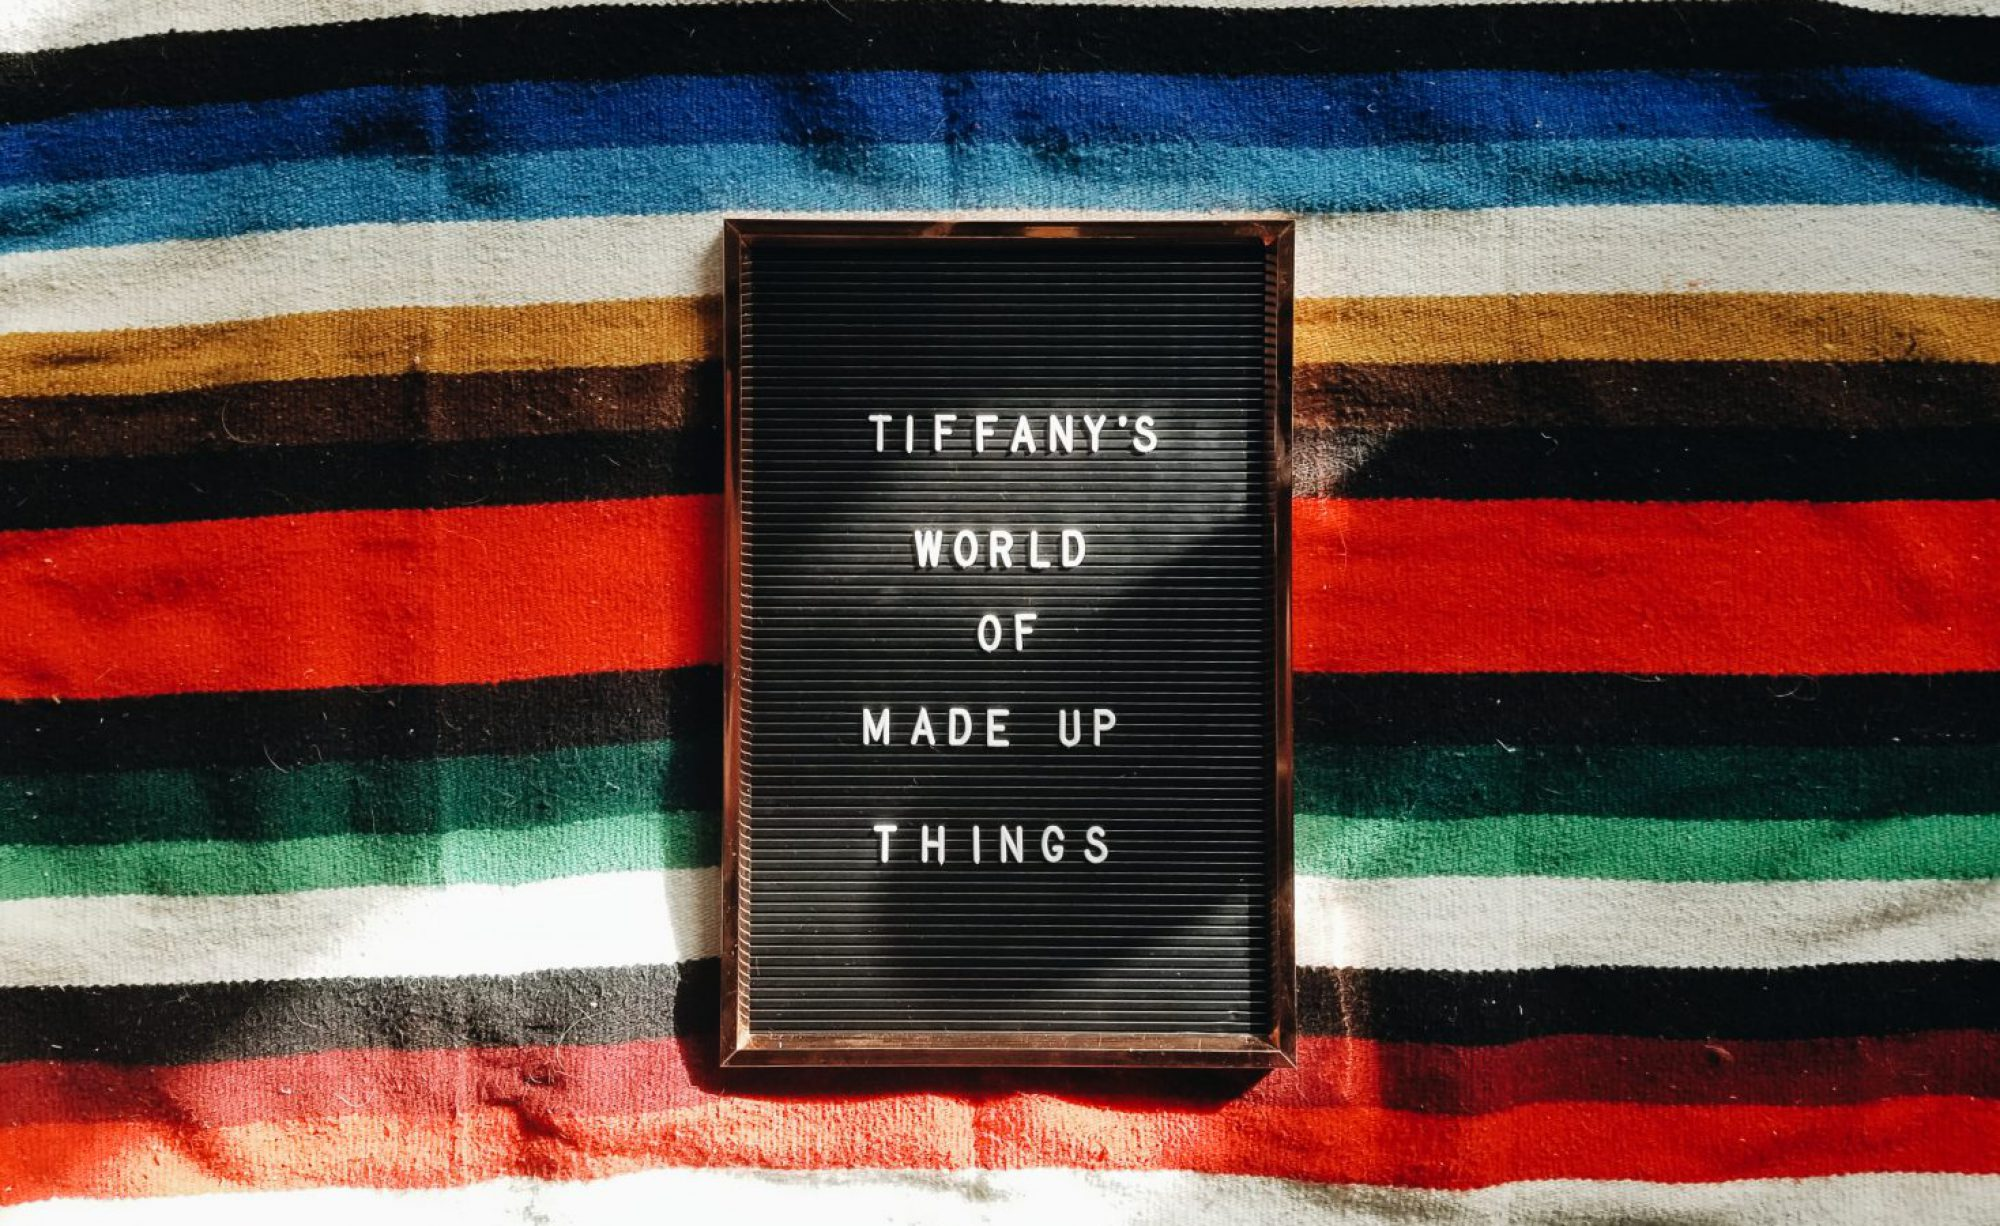 TIffany's World Of Made Up Things